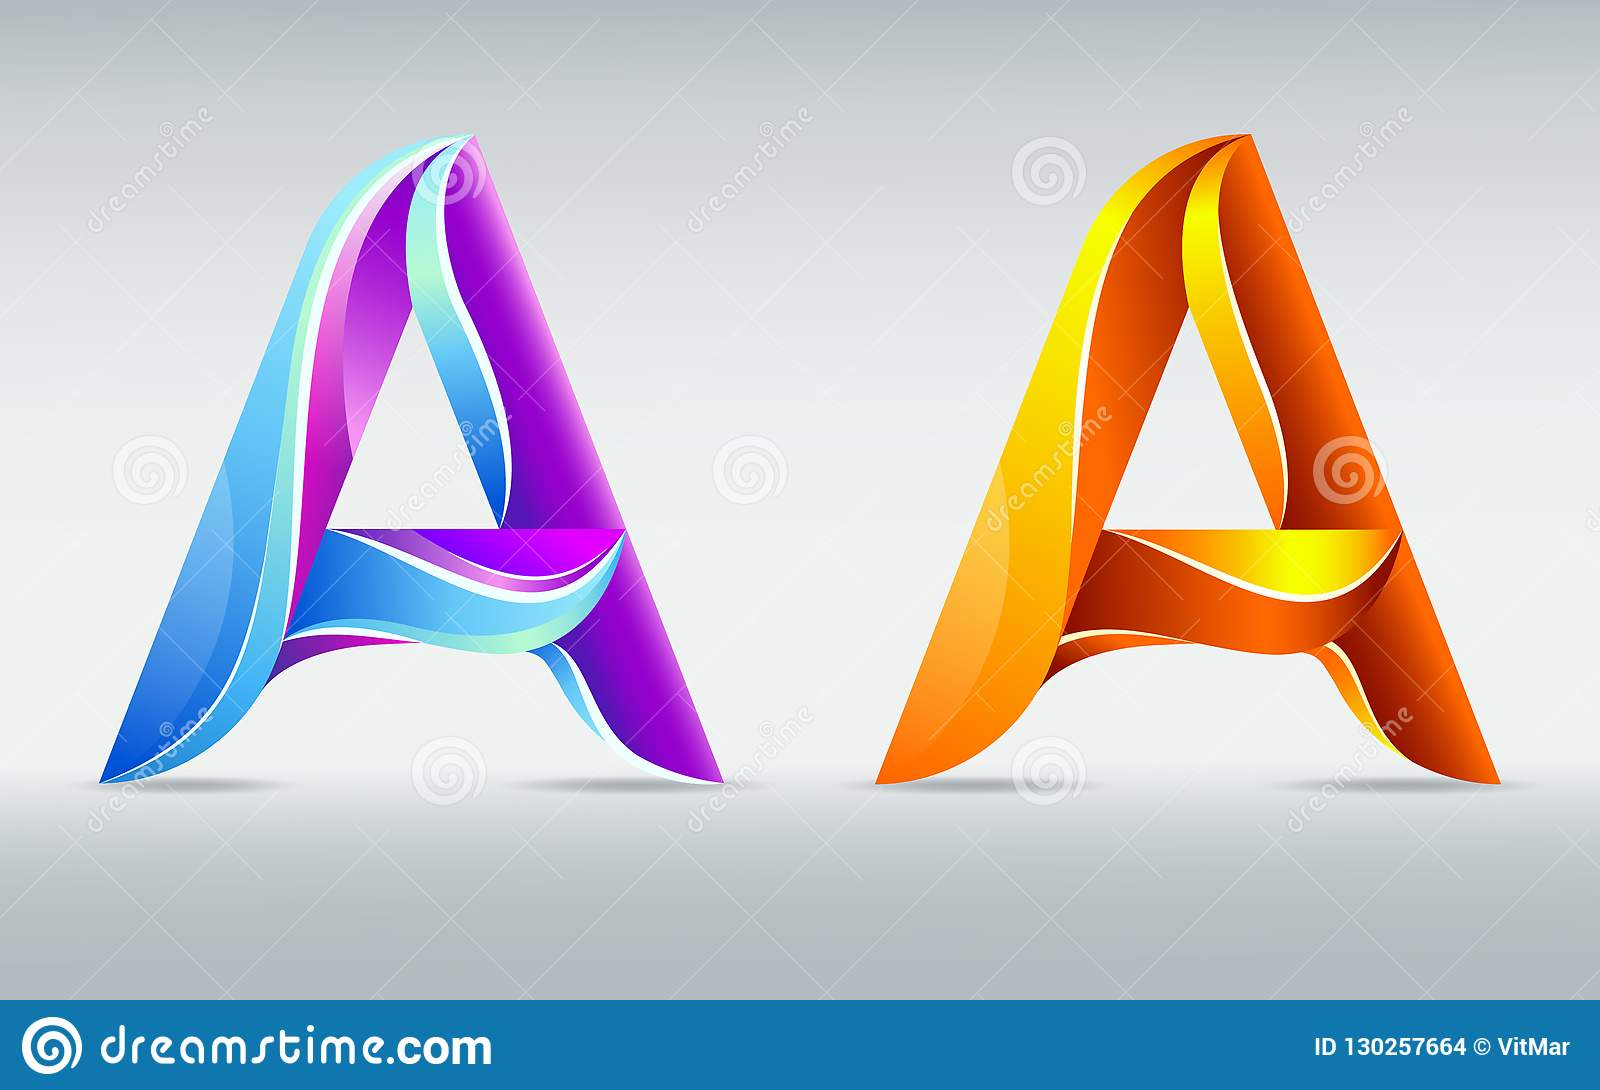 Colorful Creative Letter A  Abstract 3D Font  Caramel And